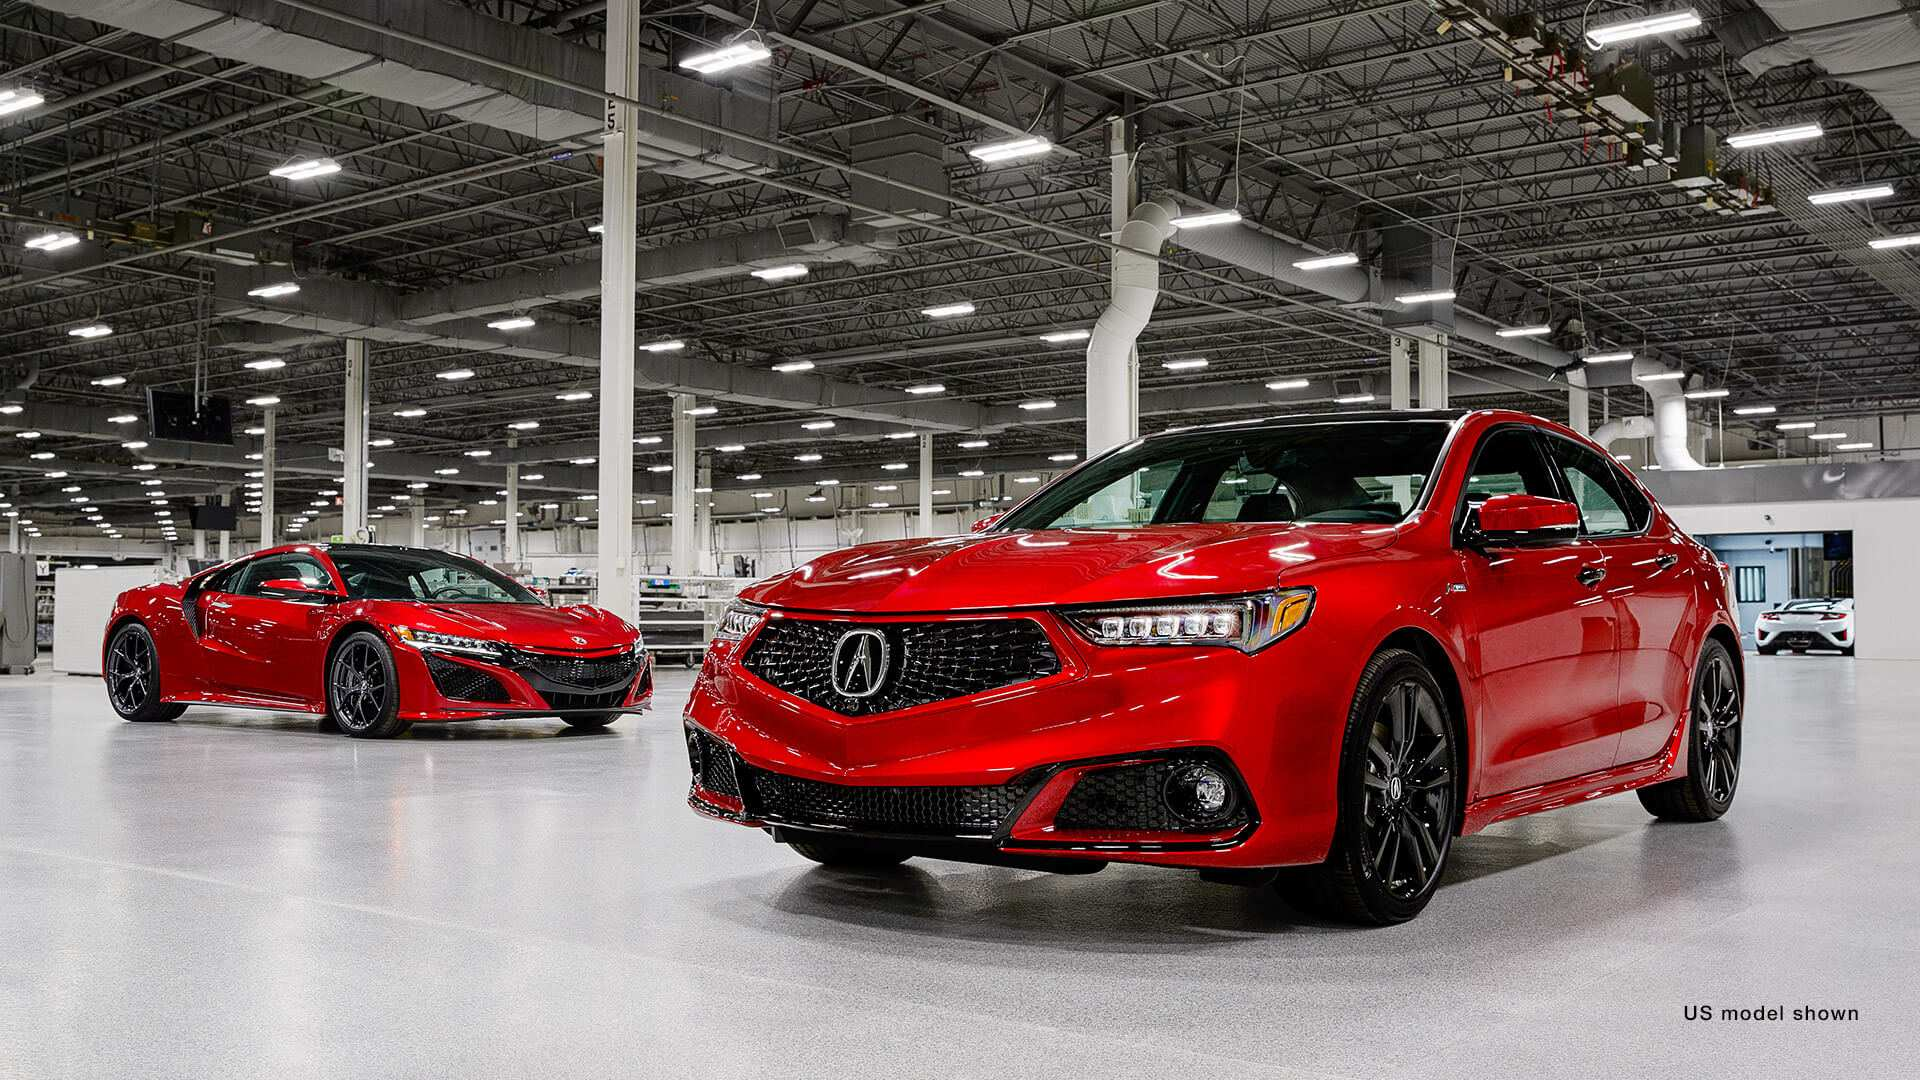 72 A Acura Mdx 2020 Pmc Price And Release Date